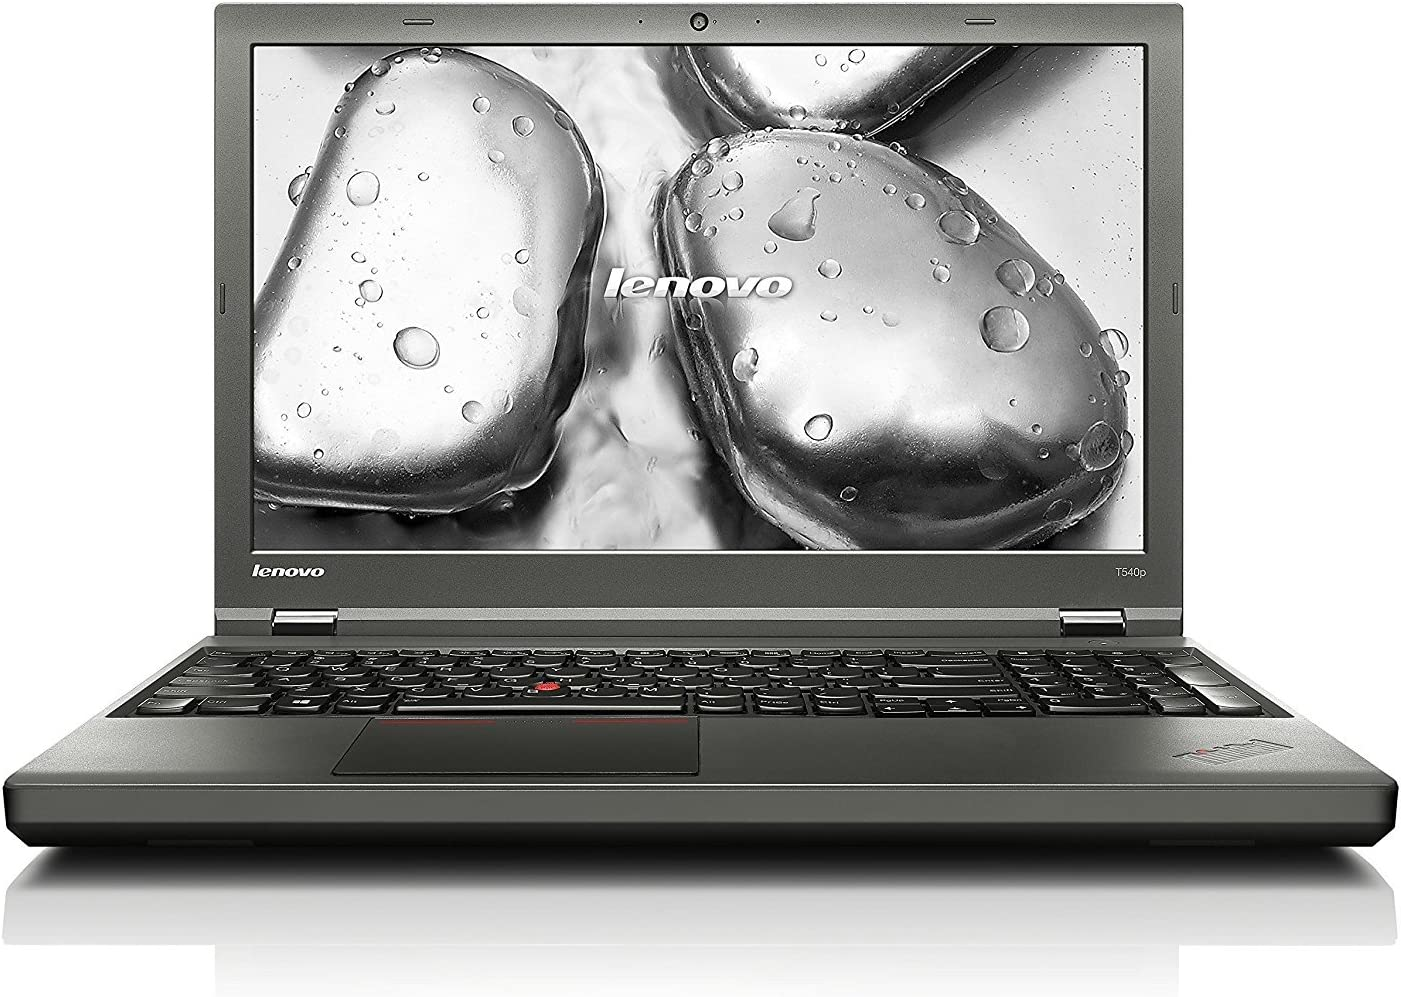 Lenovo ThinkPad T540p Business Performance Windows 8.1 Pro Laptop - Intel Core i7-4600M, NVIDIA GT 730M, 8GB RAM, 500GB HDD, 15.6